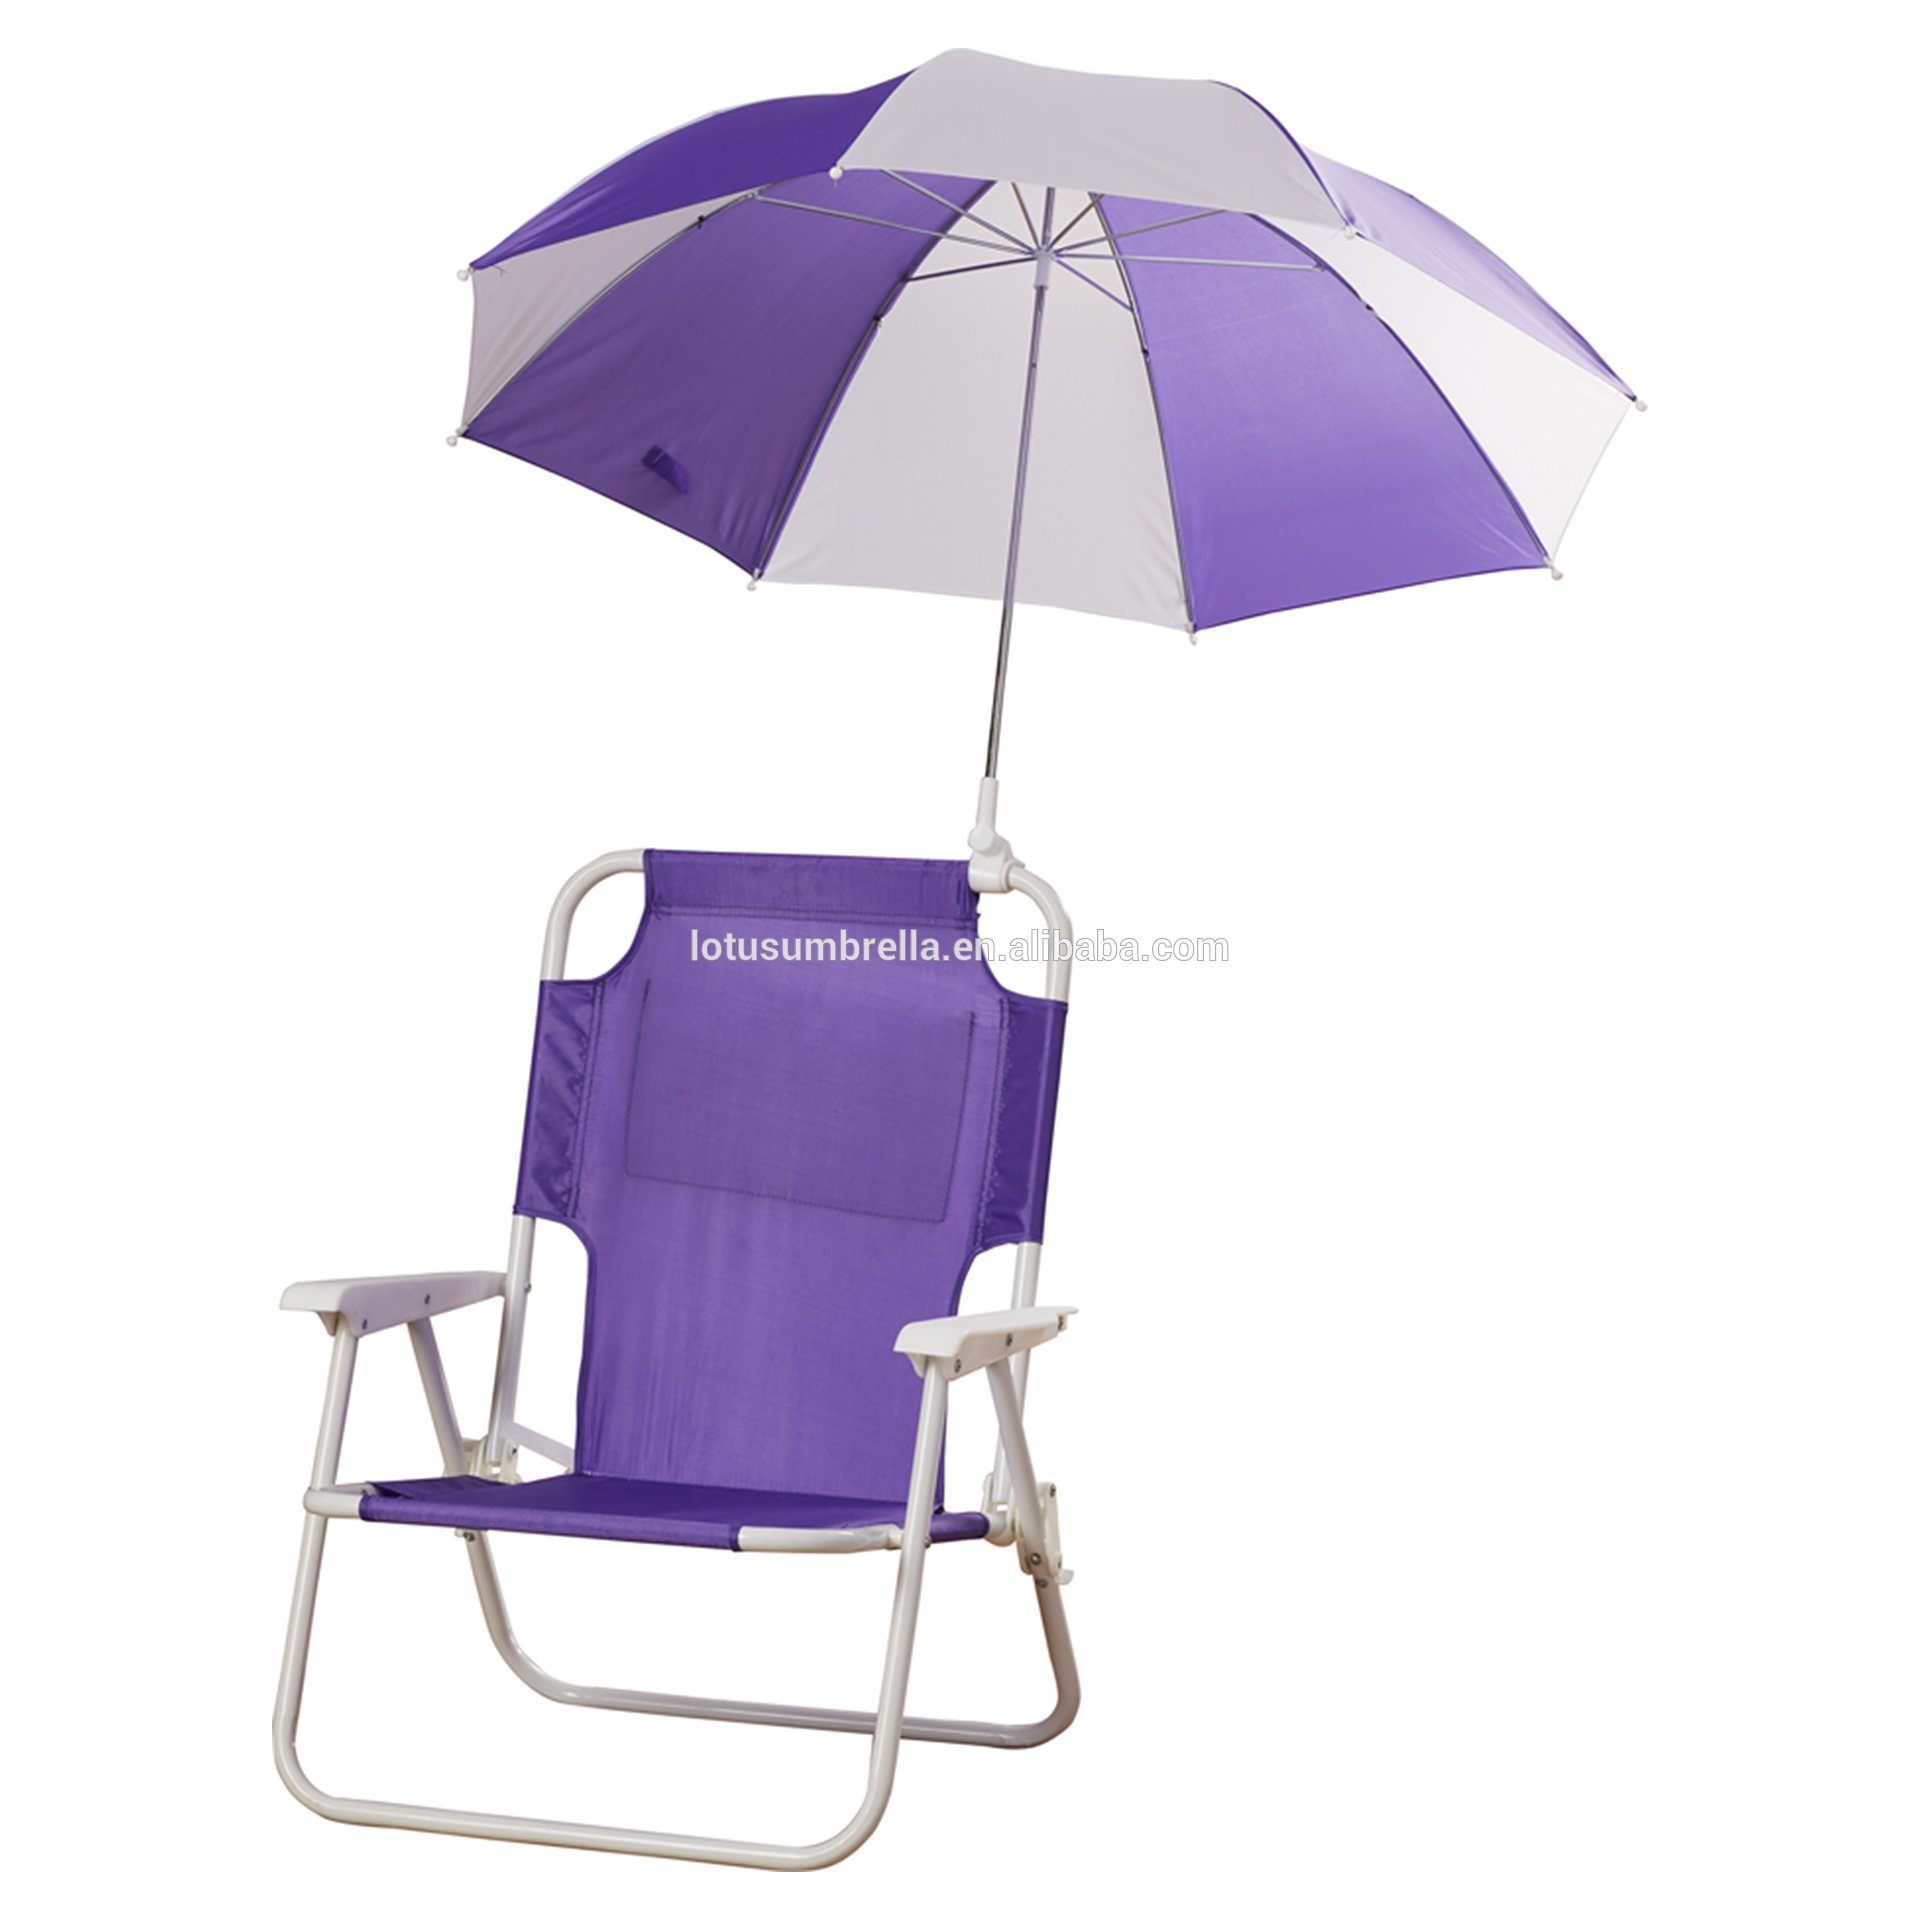 8K promotion clamp beach chair umbrella